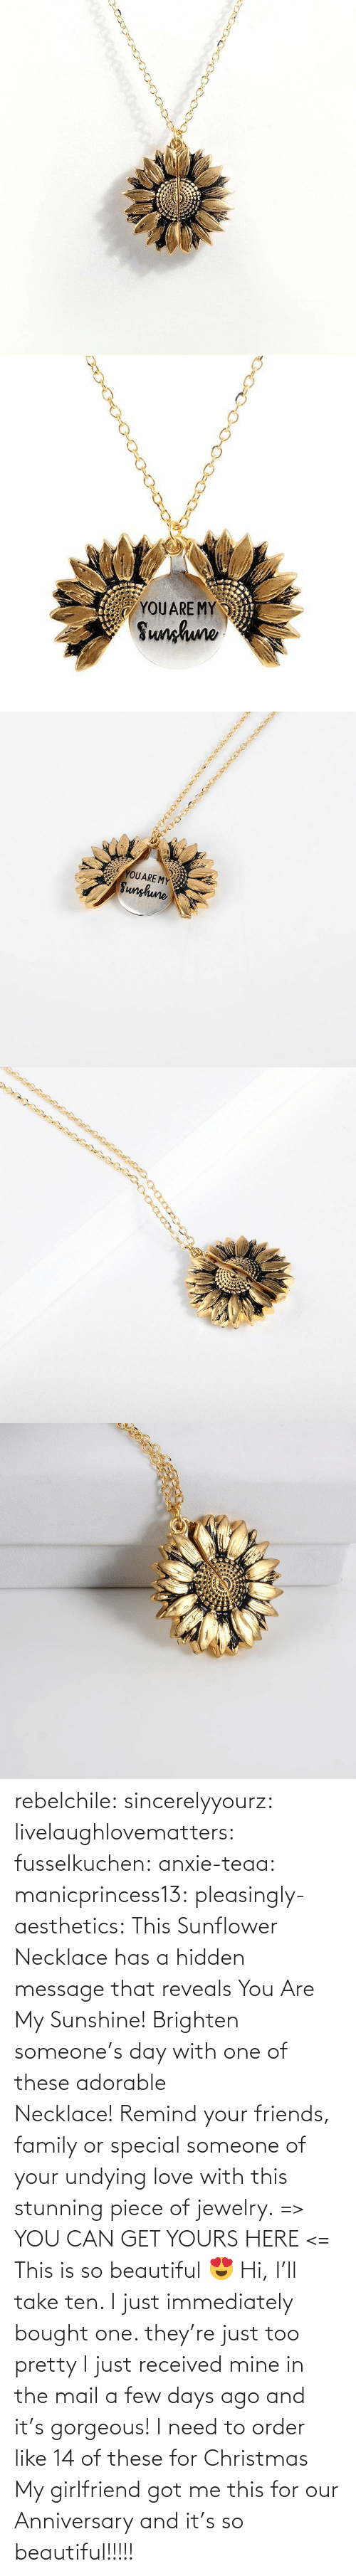 remind: rebelchile:  sincerelyyourz:  livelaughlovematters:  fusselkuchen:  anxie-teaa:   manicprincess13:   pleasingly-aesthetics:  This Sunflower Necklace has a hidden message that reveals You Are My Sunshine! Brighten someone's day with one of these adorable Necklace! Remind your friends, family or special someone of your undying love with this stunning piece of jewelry. => YOU CAN GET YOURS HERE <=   This is so beautiful 😍    Hi, I'll take ten.    I just immediately bought one. they're just too pretty   I just received mine in the mail a few days ago and it's gorgeous!   I need to order like 14 of these for Christmas    My girlfriend got me this for our Anniversary and it's so beautiful!!!!!